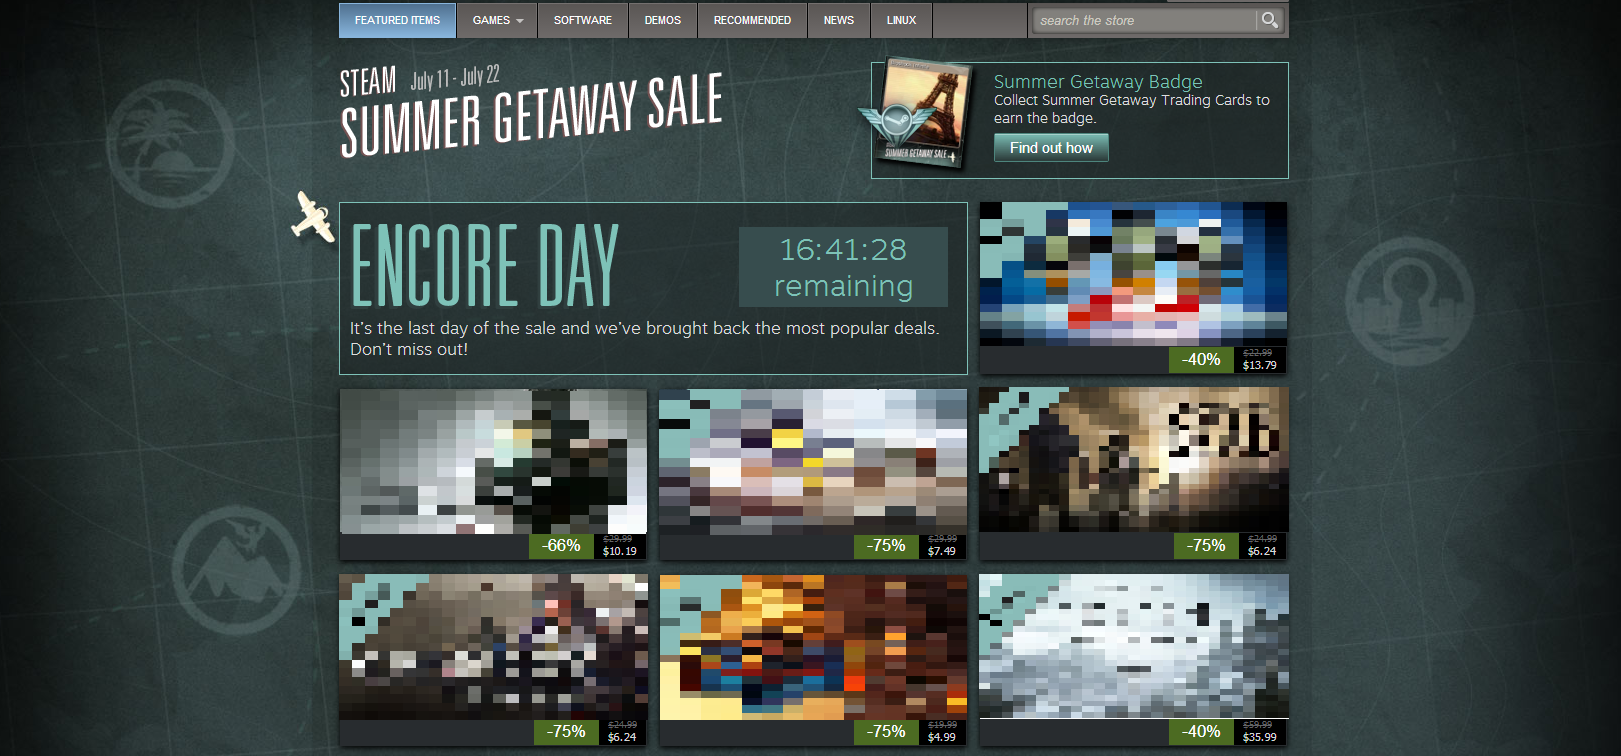 Are You Ready for a Miracle? - The 2013 Summer Steam Sale, and the Way of Things